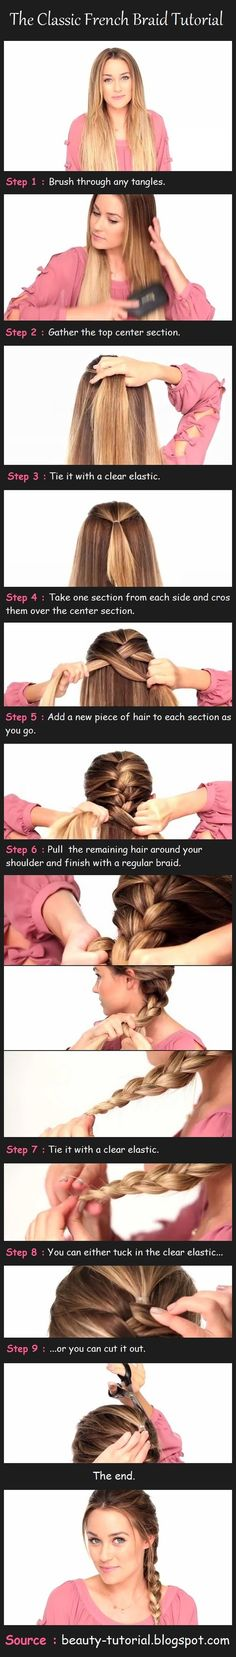 french braid. I think I already repinned this but oh well